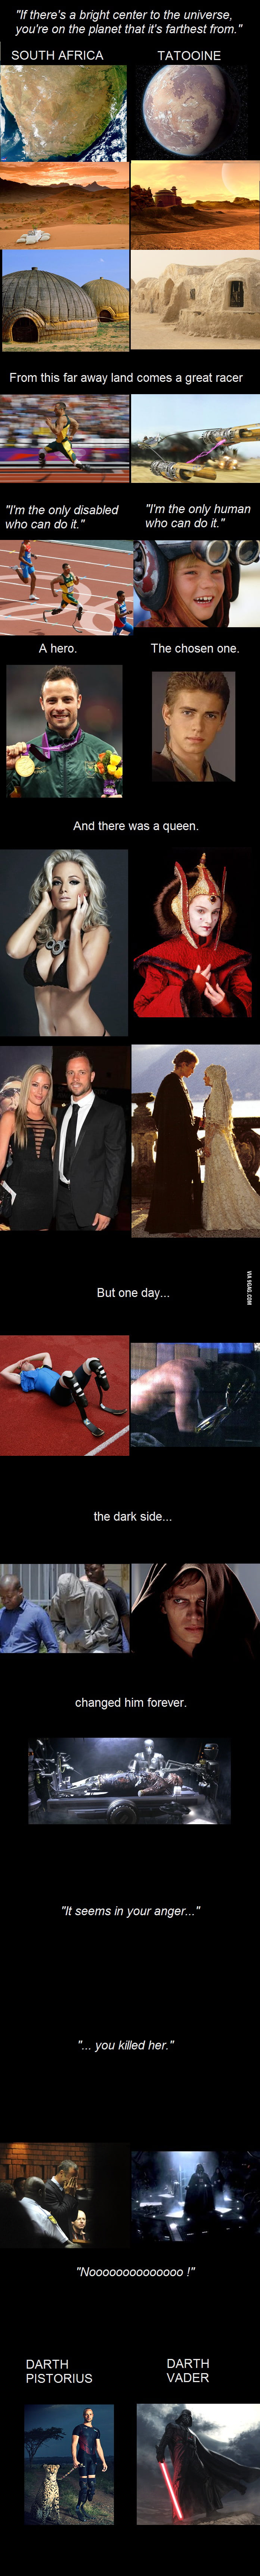 Darth Pistorius, the story of Oscar and Anakin